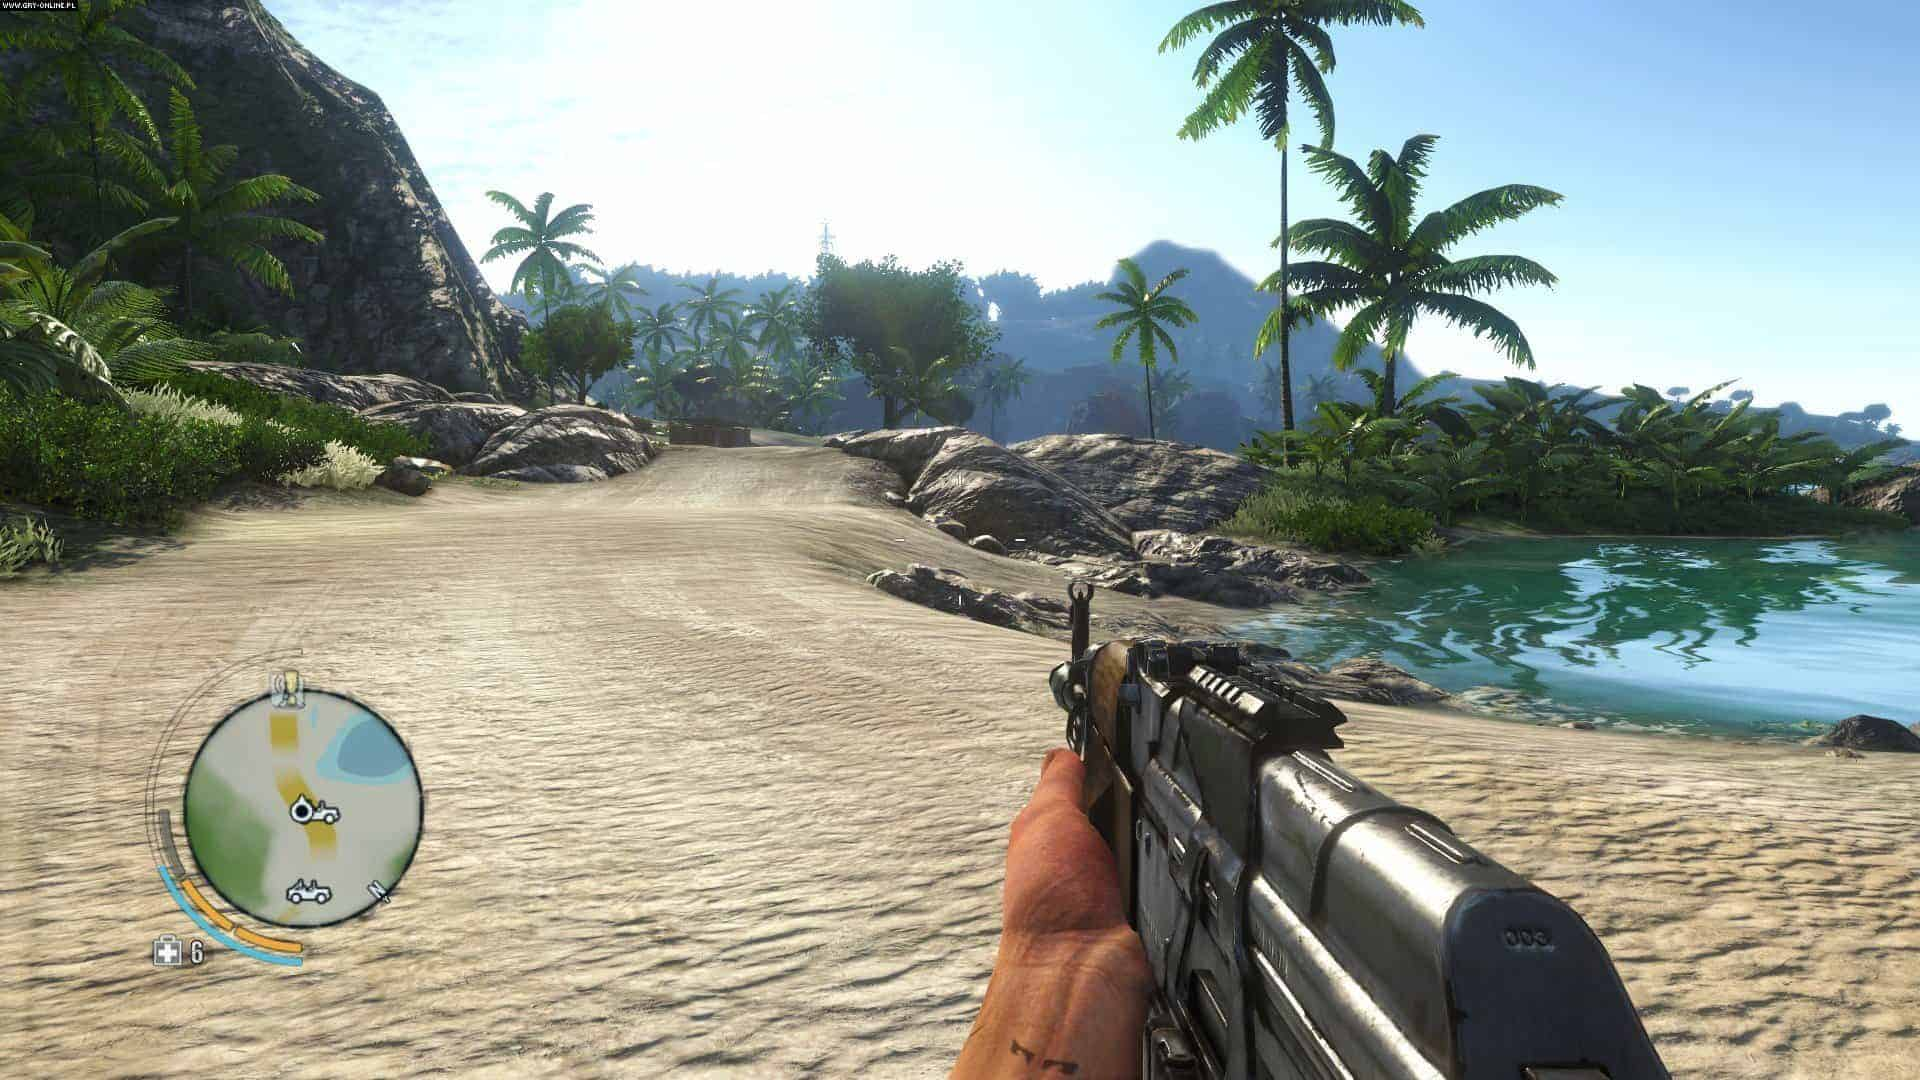 Far Cry 3 Free game download pc